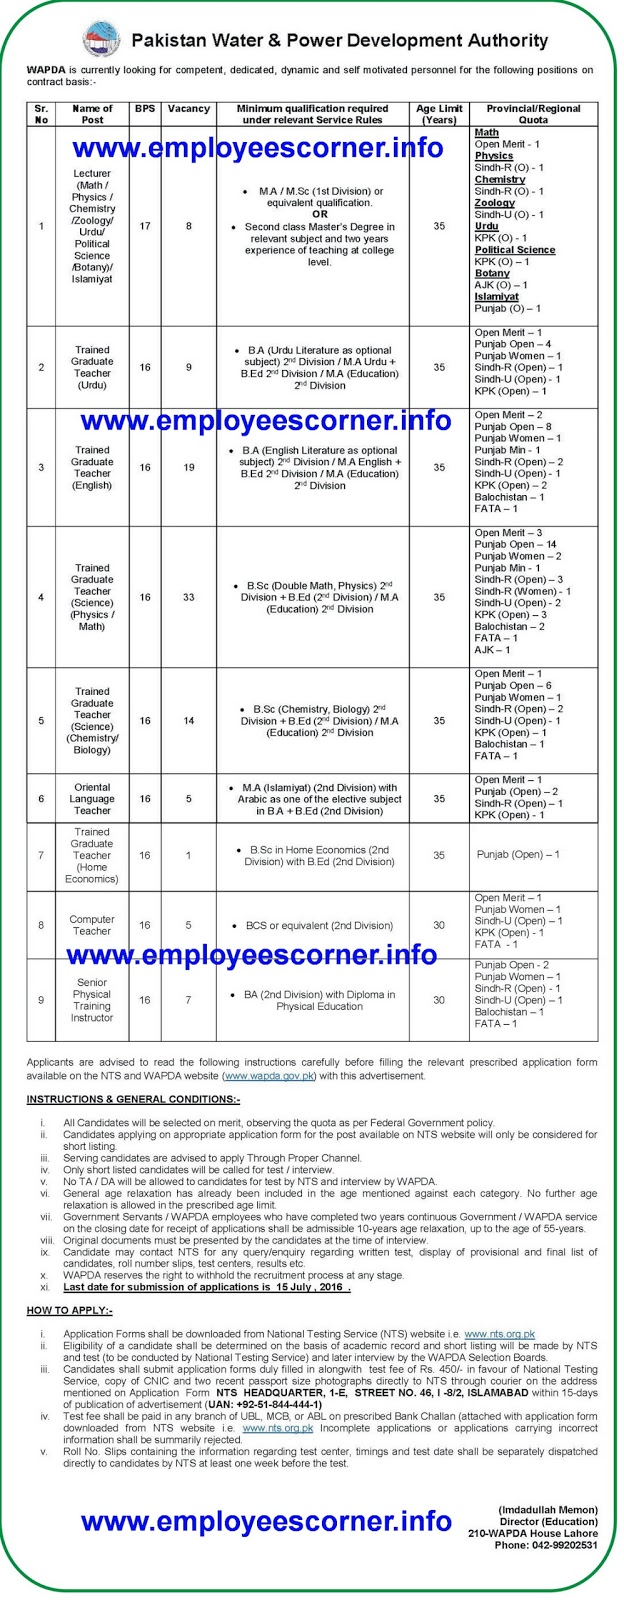 Jobs in Pakistan WAPDA Jobs 2016 for Teachers